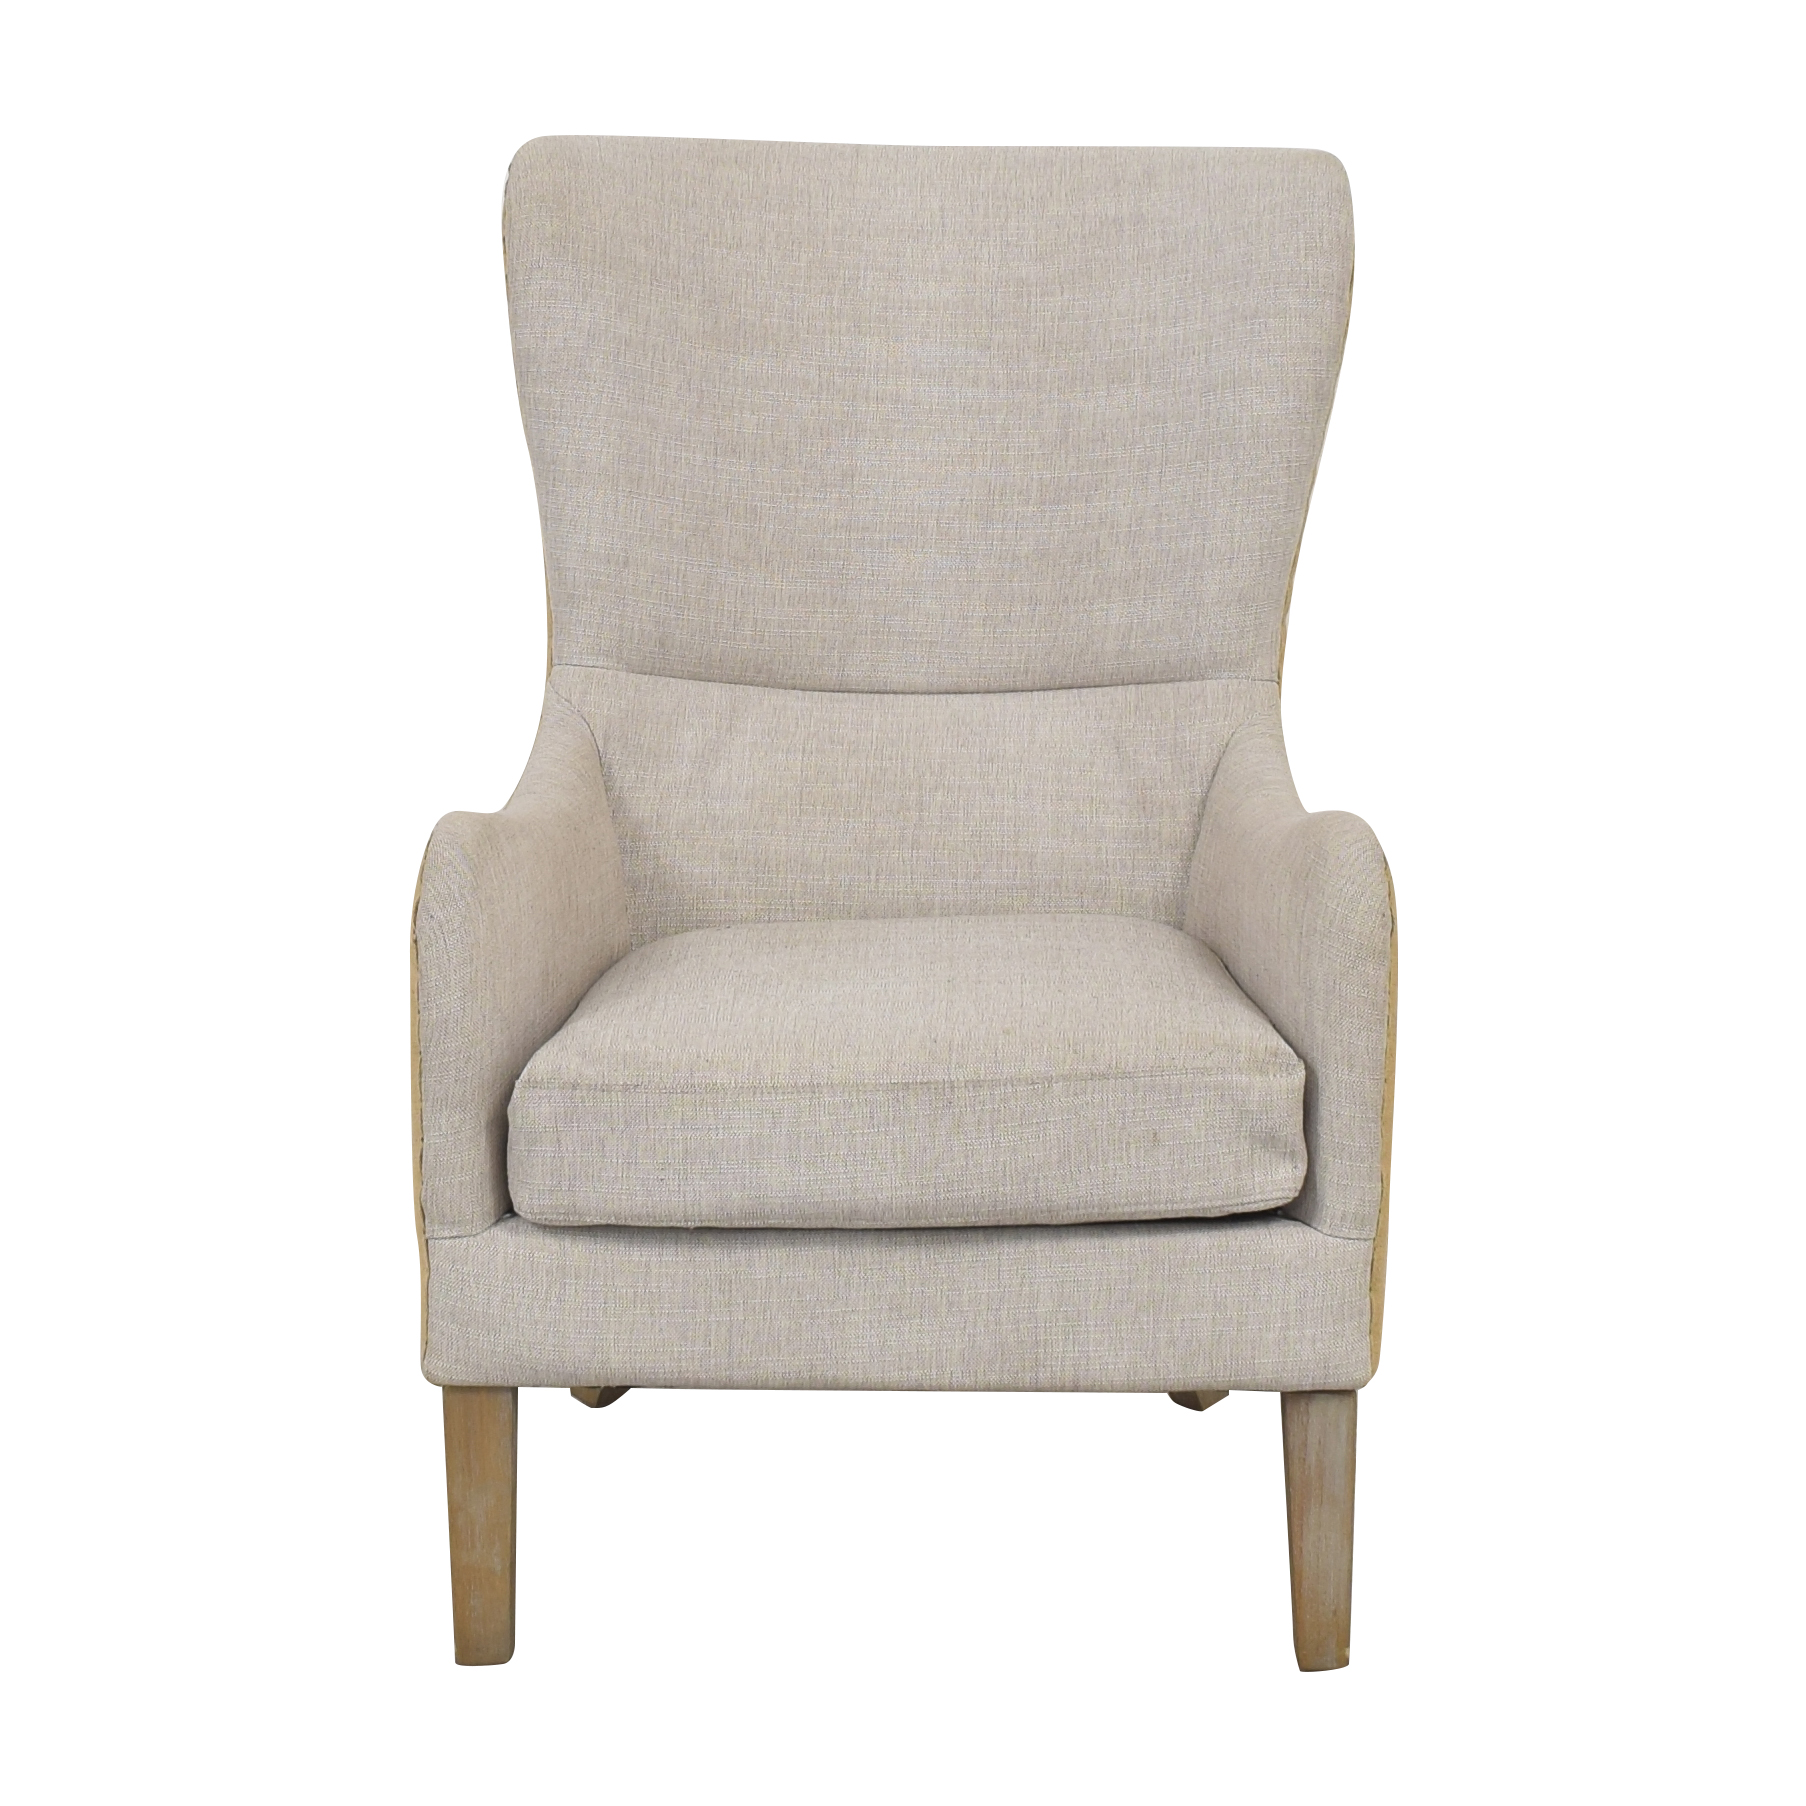 Tommy Hilfiger Tommy Hilfiger Warner Wingback Chair on sale